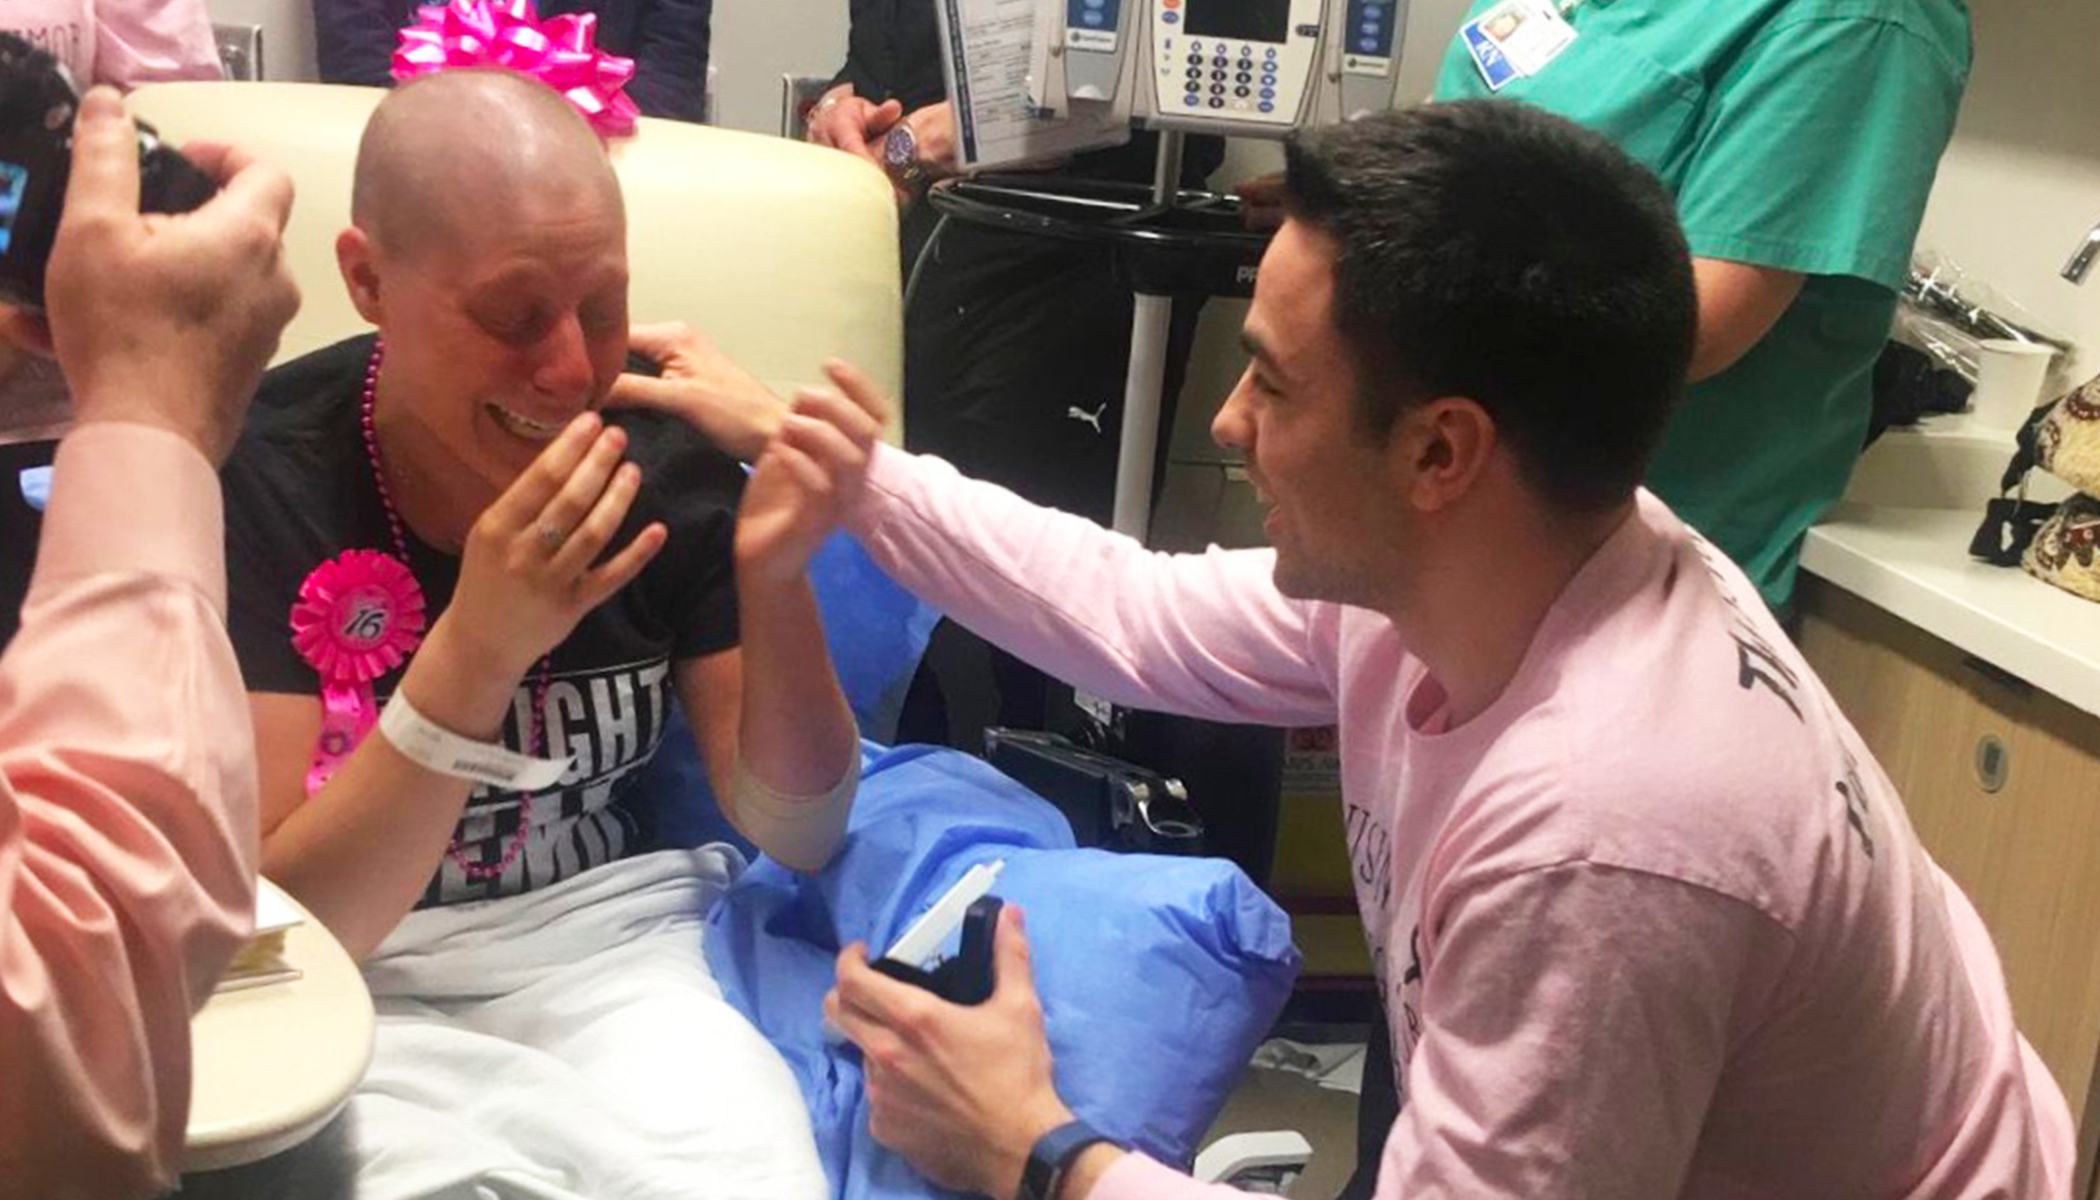 Loyal boyfriend who stuck with girlfriend during breast cancer proposes on her last day of chemo